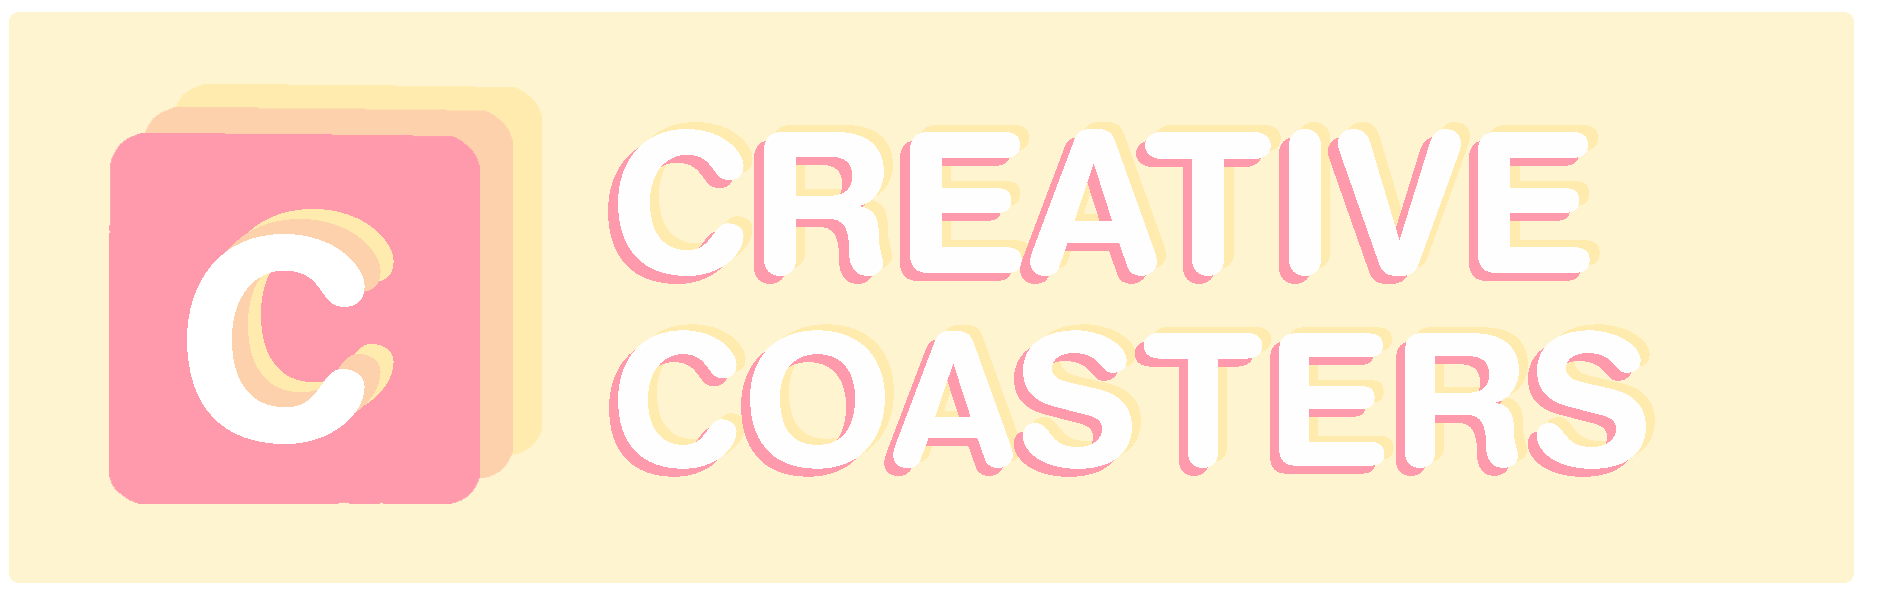 Creative Coasters Logo<div style='clear:both;width:100%;height:0px;'></div><span class='cat'>Banner, Logo</span>